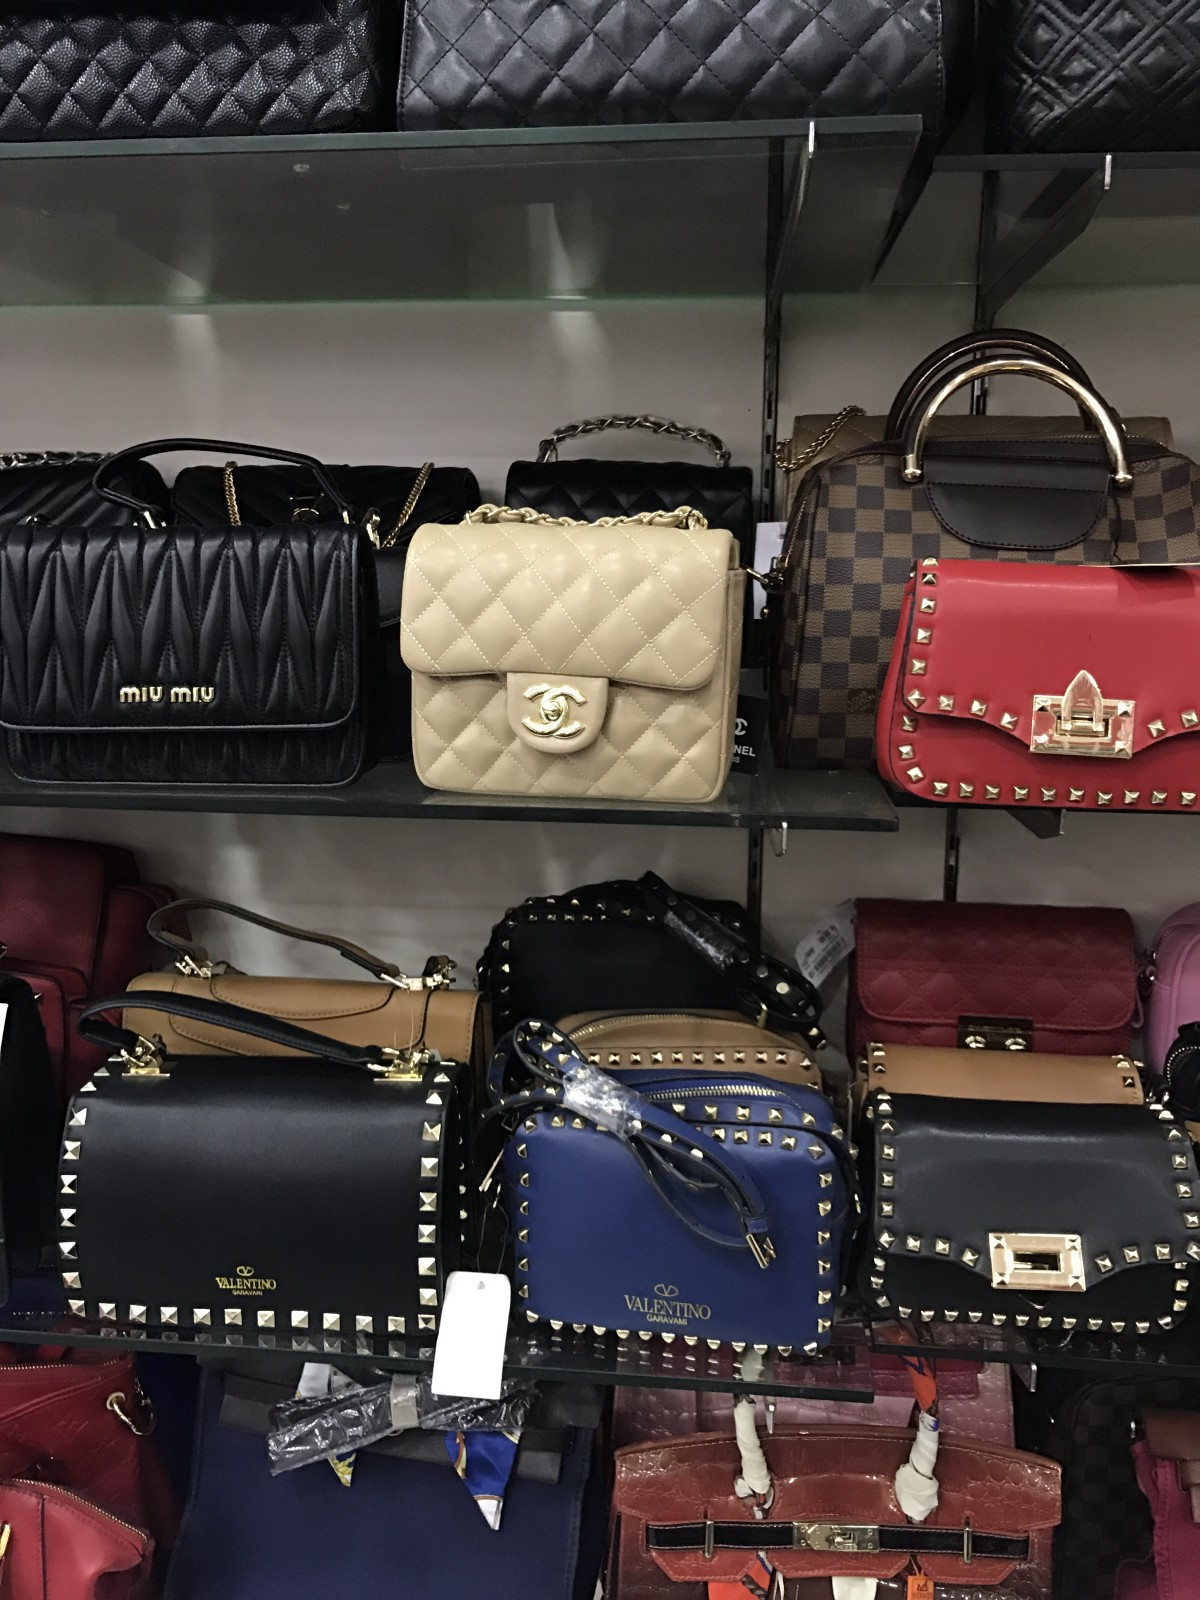 40aeaed2ea5 Counterfeit handbags in Indonesia. Photo by Becca Risa Luna. Counterfeit  Gucci, Balenciaga, Louis Vuitton ...